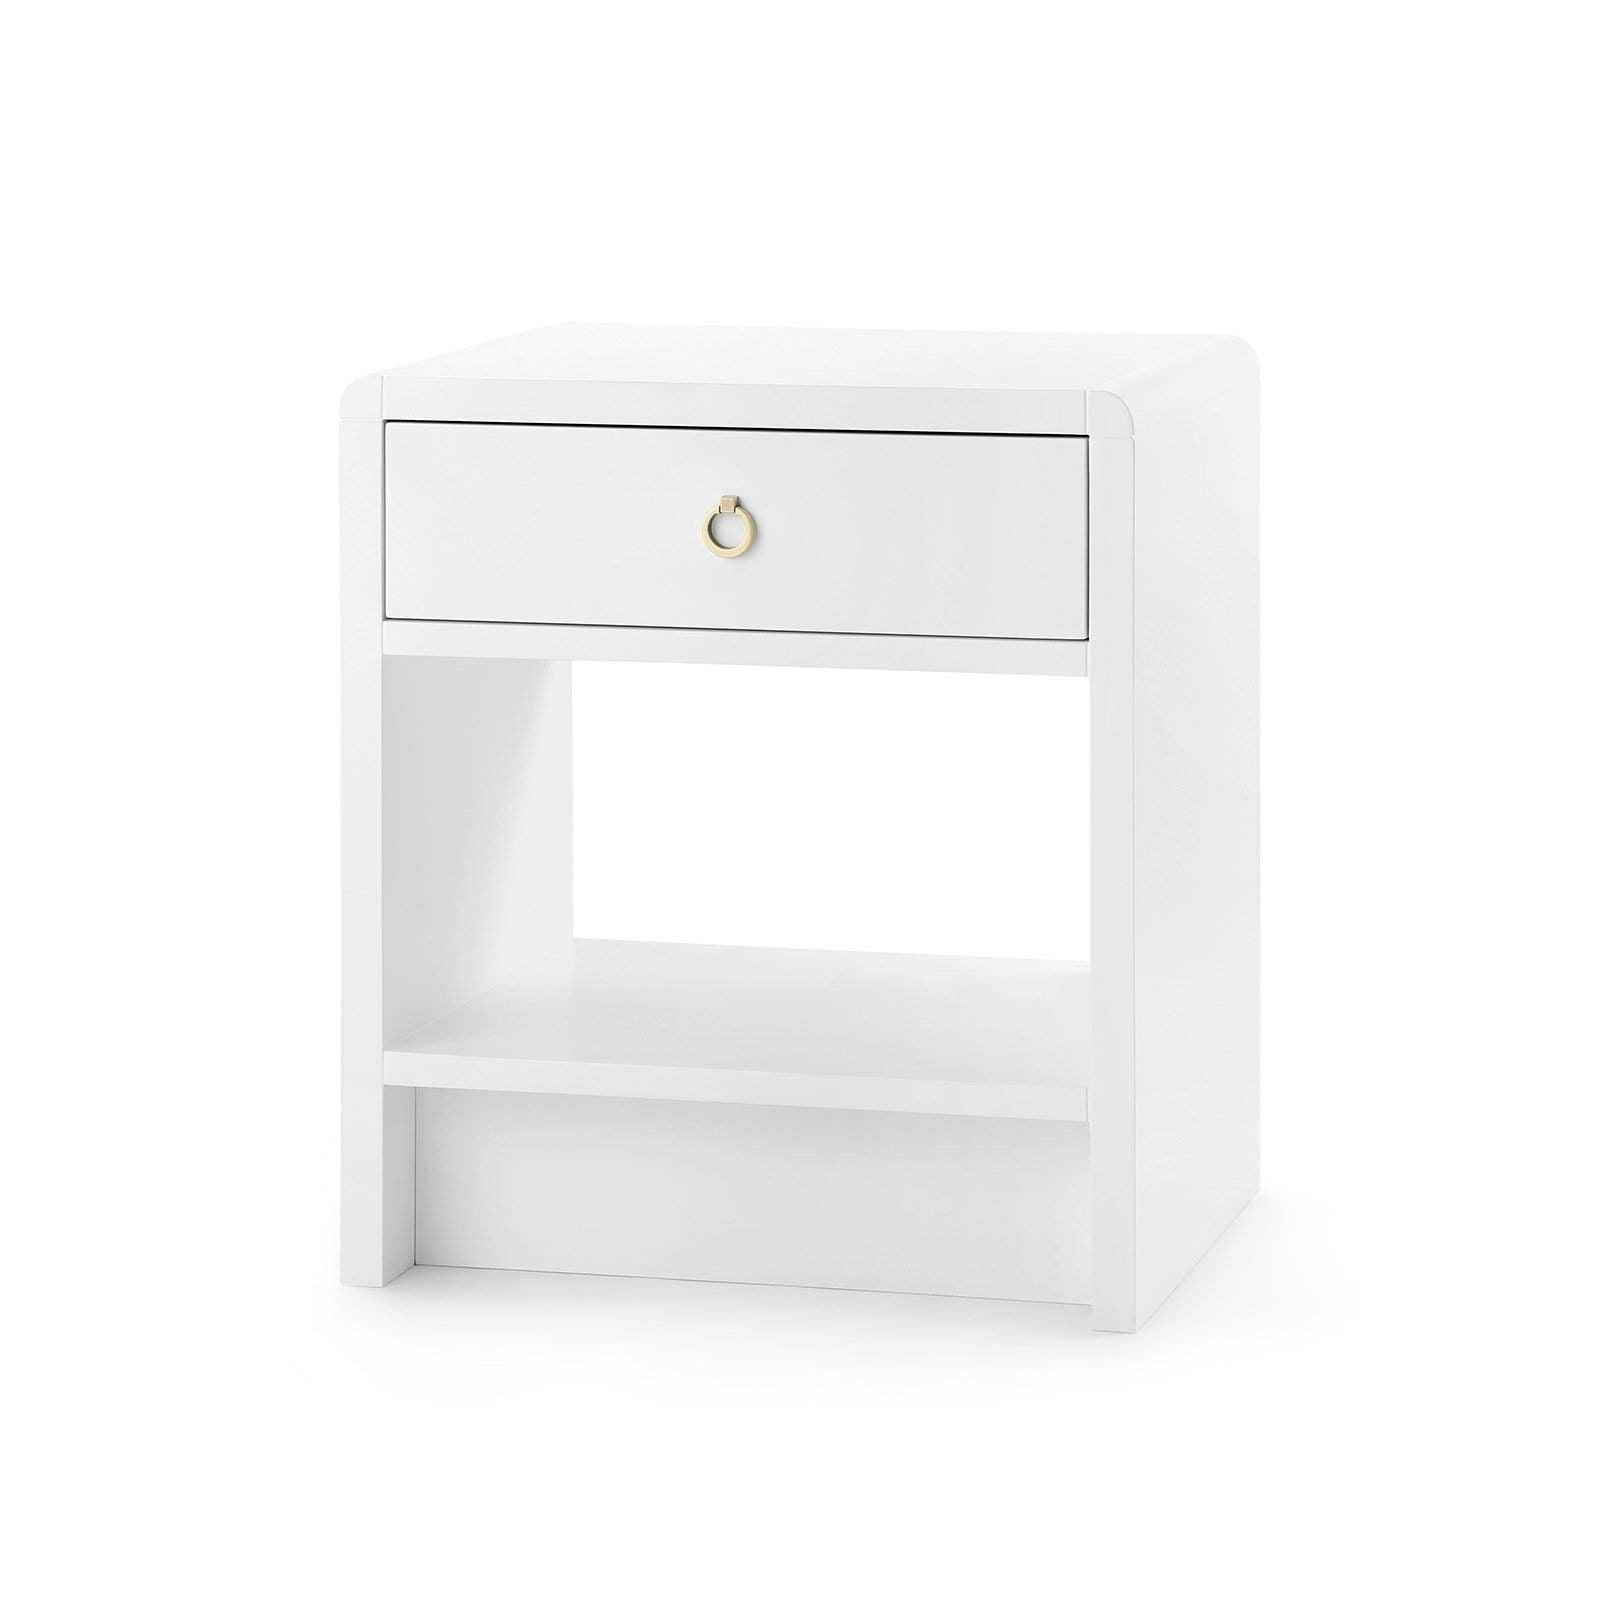 Bungalow 5 - BENJAMIN 1-DRAWER SIDE TABLE in WHITE-Bungalow 5-Blue Hand Home